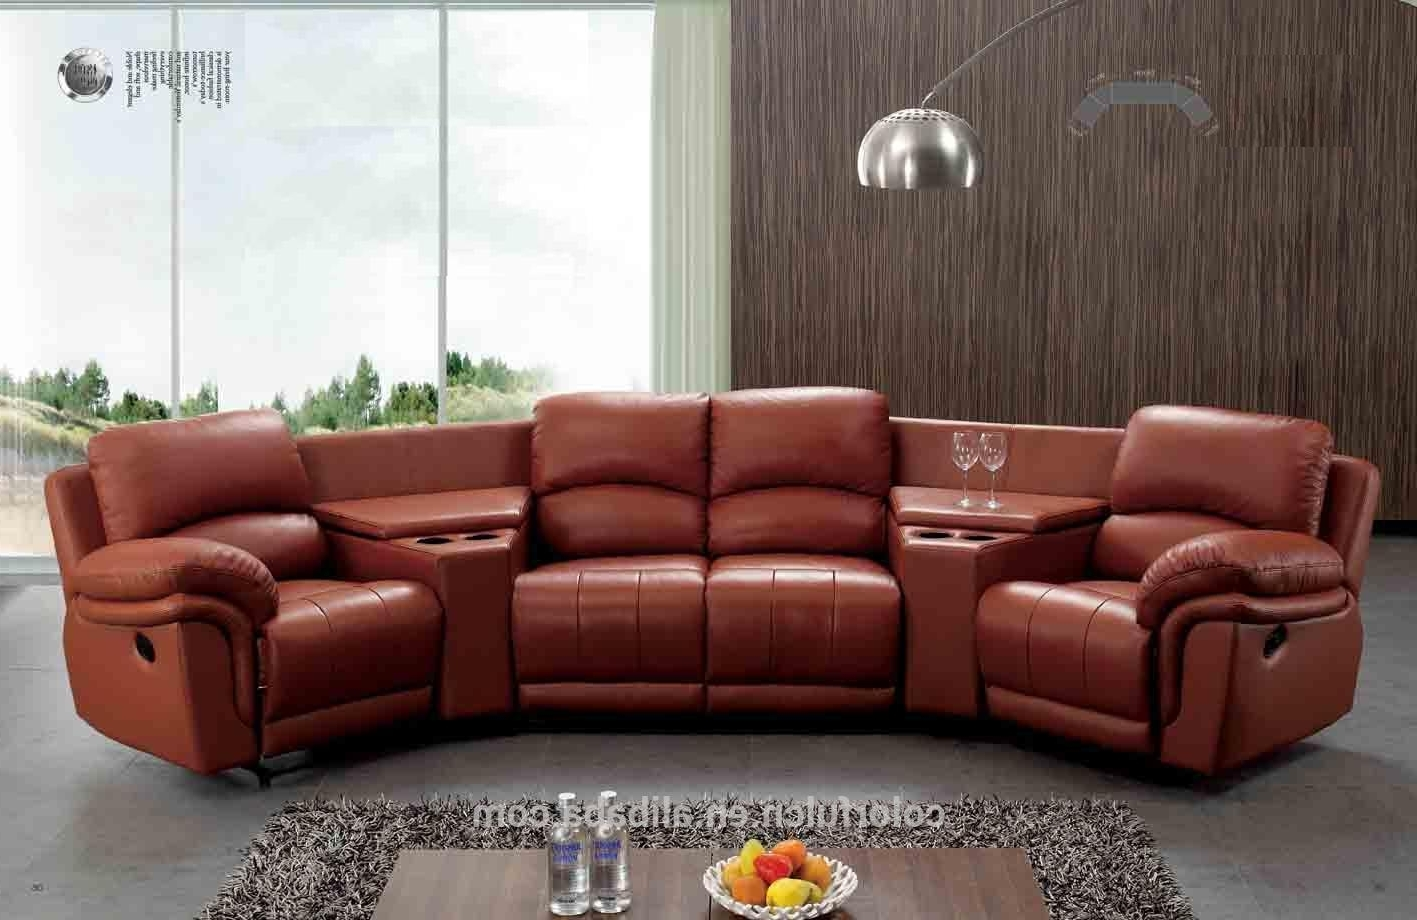 Most Current Sectional Sofa Design: Semi Circular Sectional Sofa Couches Round Regarding Curved Sectional Sofas With Recliner (View 7 of 15)